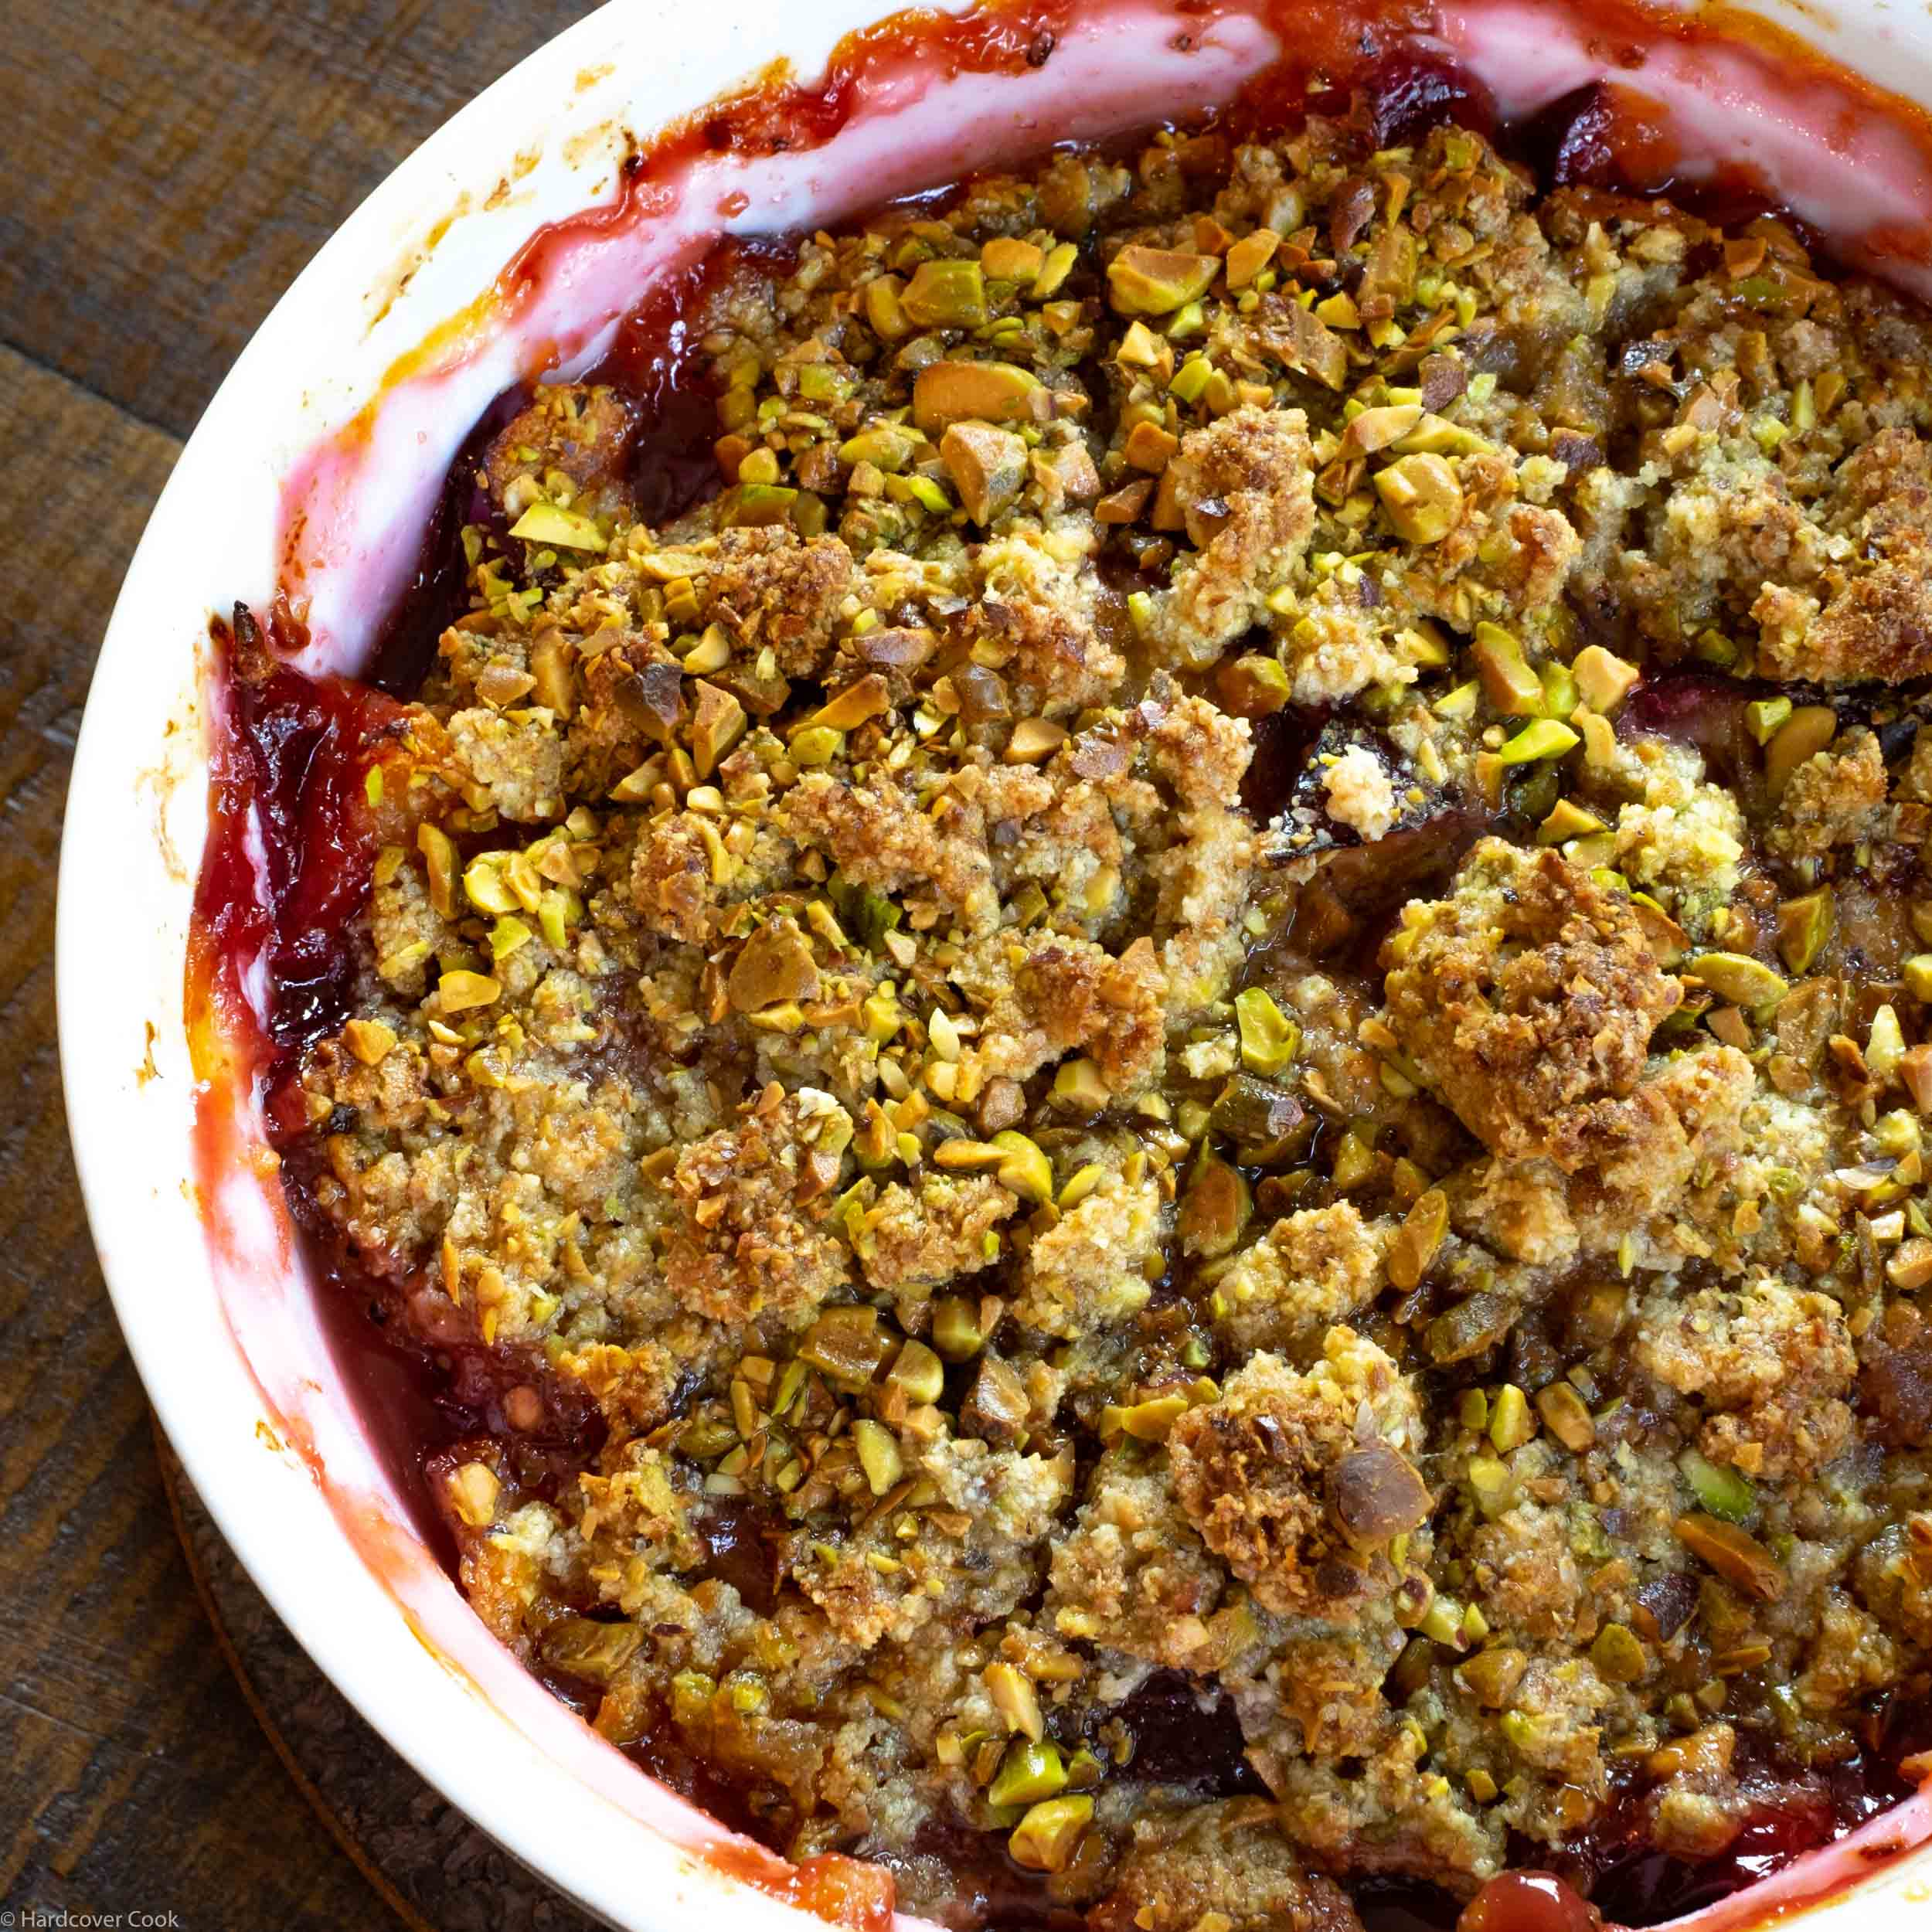 Pistachio-Plum Crisp from Dining In